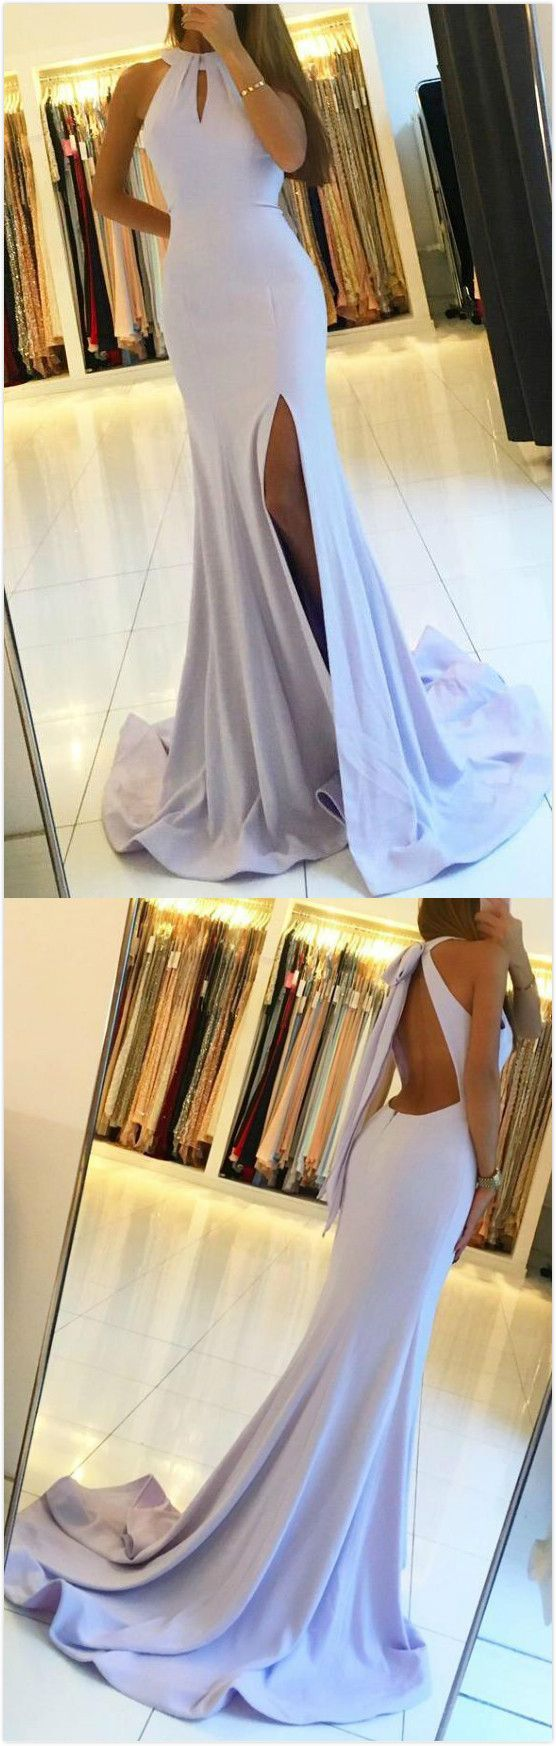 Elegant Mermaid Prom Dress,Cheap Prom Dress,Jewel Backless Sleeveless Prom Dress,Sexy Evening Dress,Split Front Long Prom Dress With Keyhole #longpromdresses